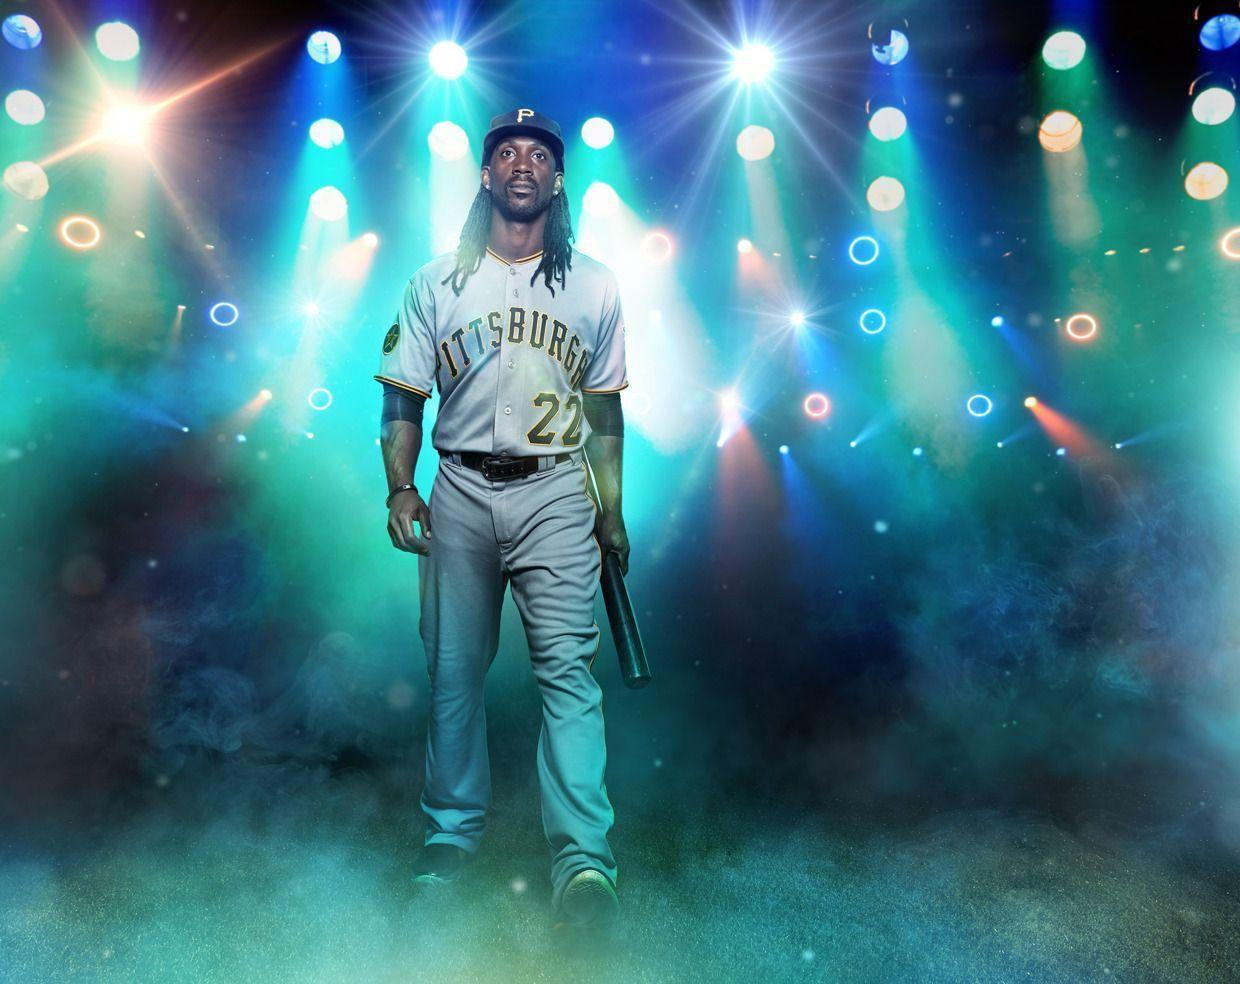 Baseball Wallpaper | Andrew Mccutchen High School Hd | Guemblung.